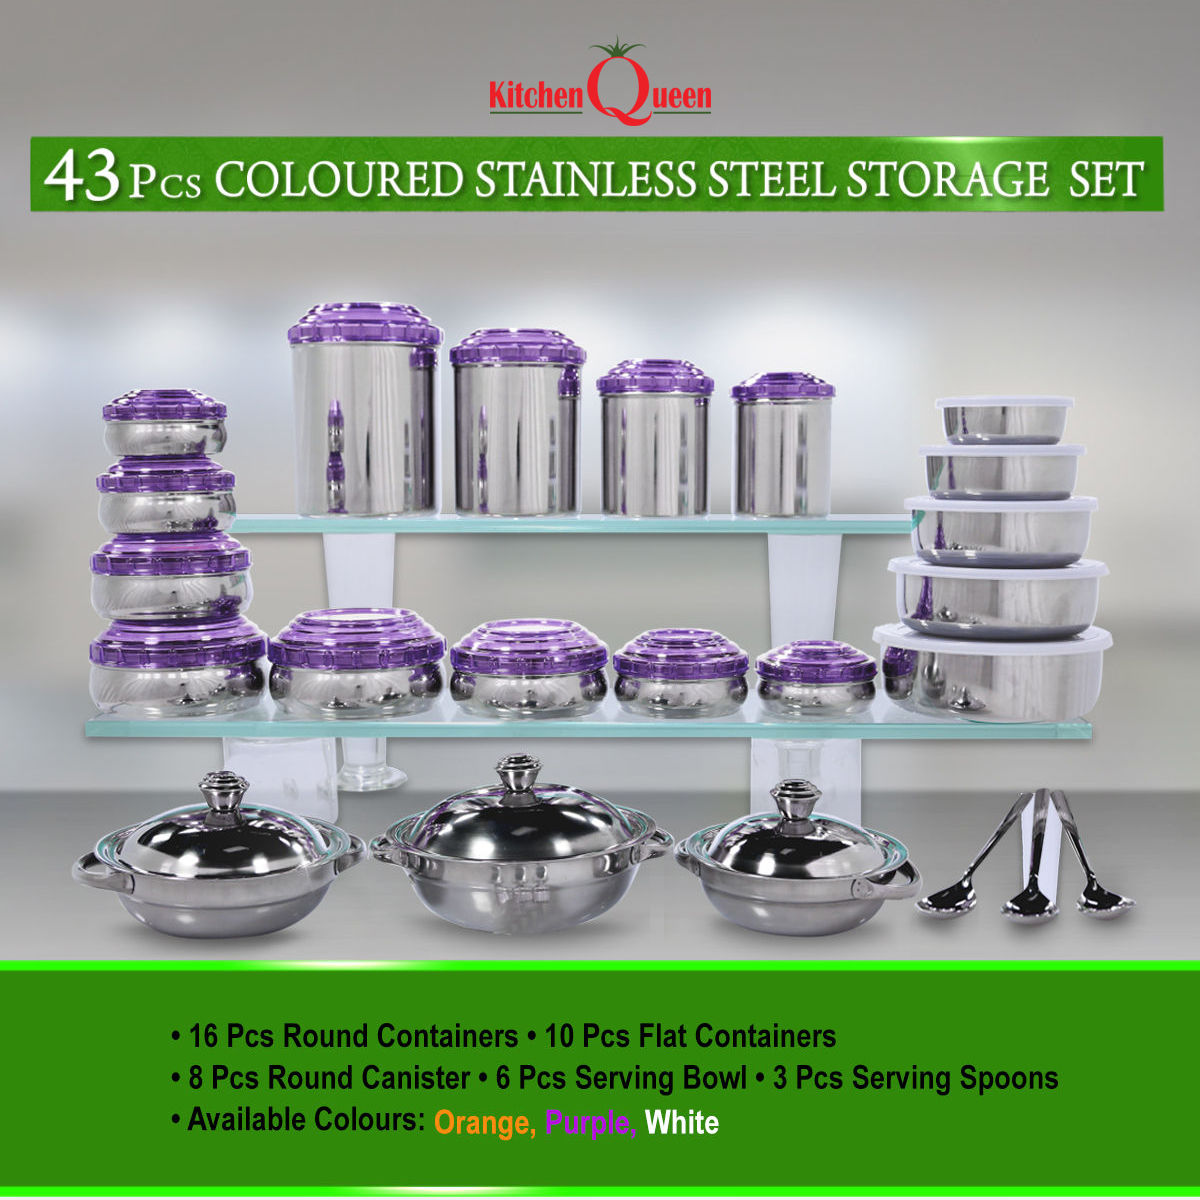 Buy Kitchen Queen 43 Pcs Coloured Stainless Steel Storage Set Online